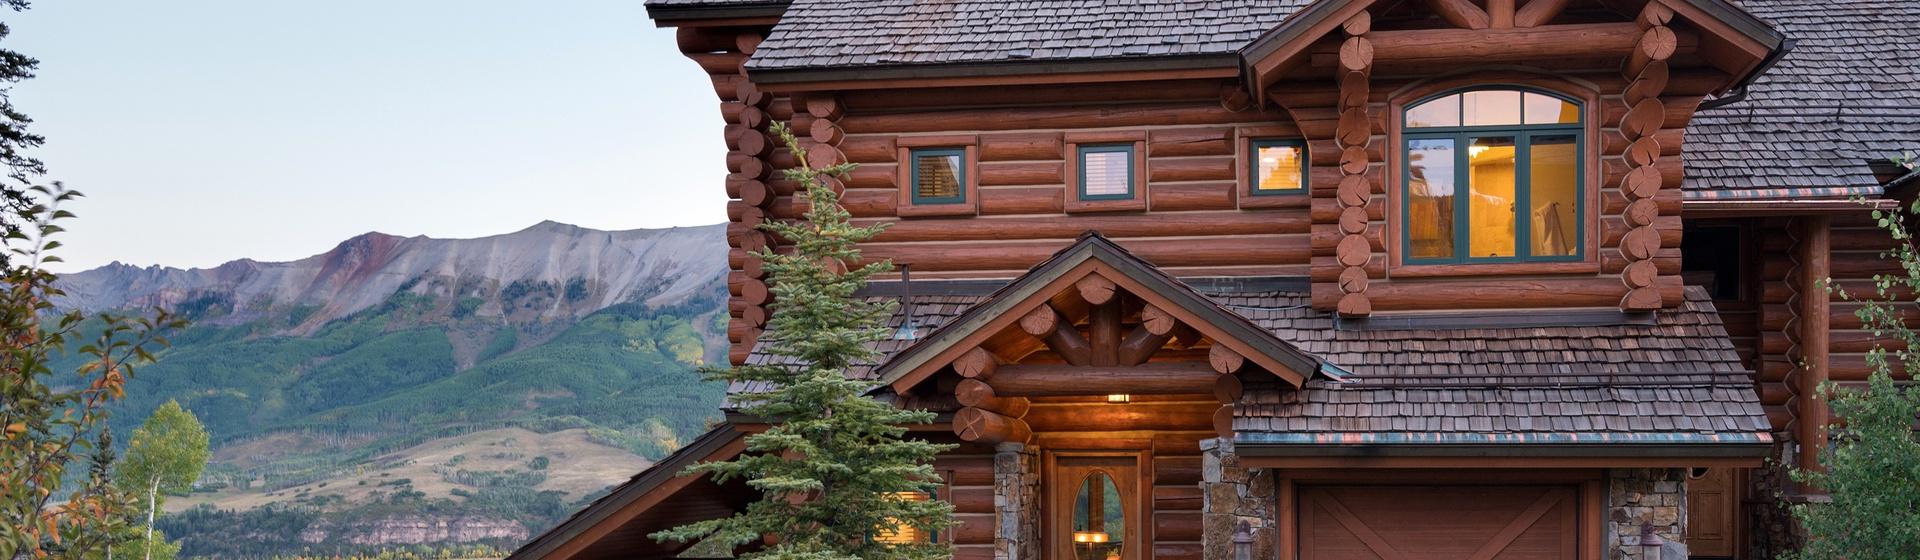 2-MountainVillage-Tristant115-exterior-WEB.jpg